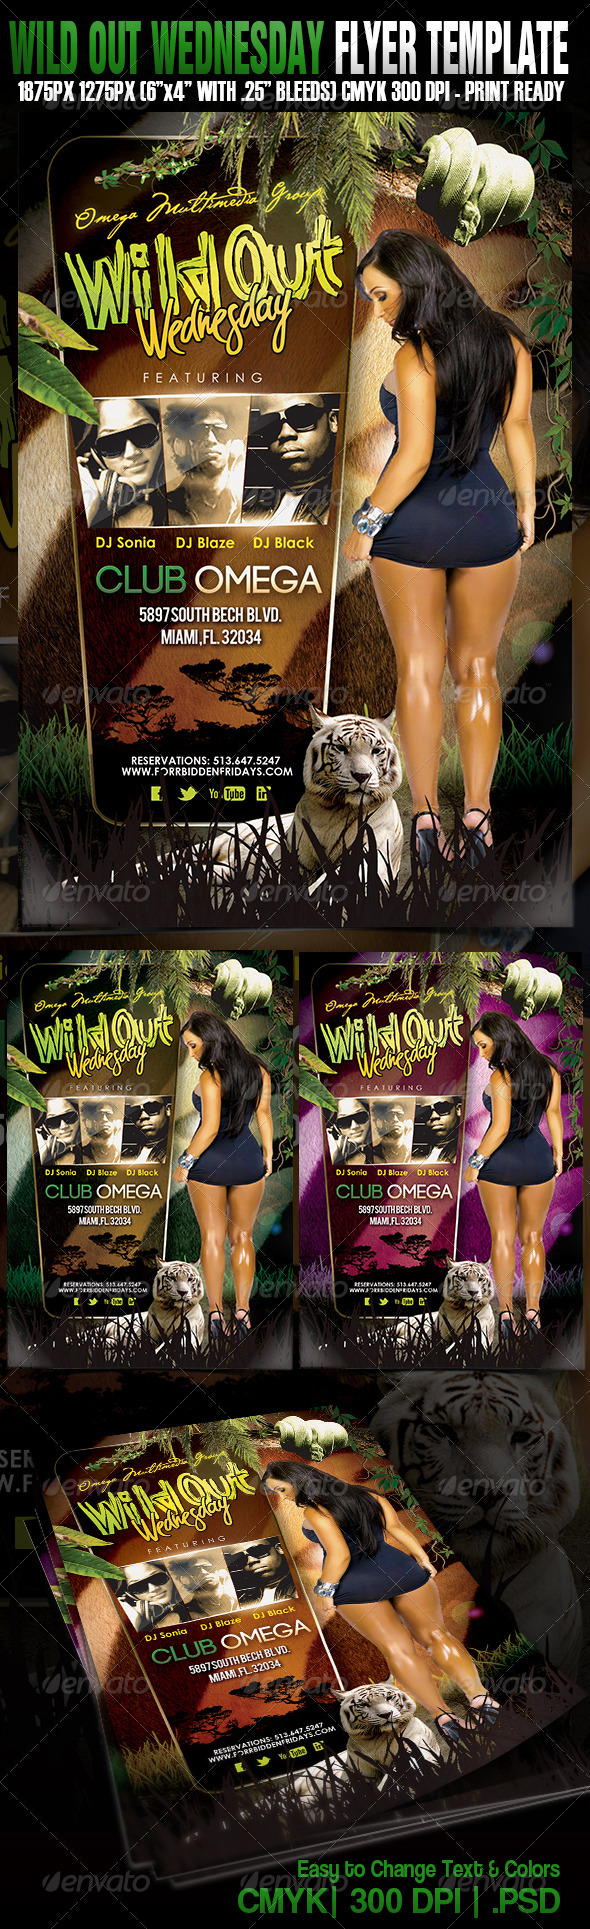 Wildout Wednesdays - Events Flyers